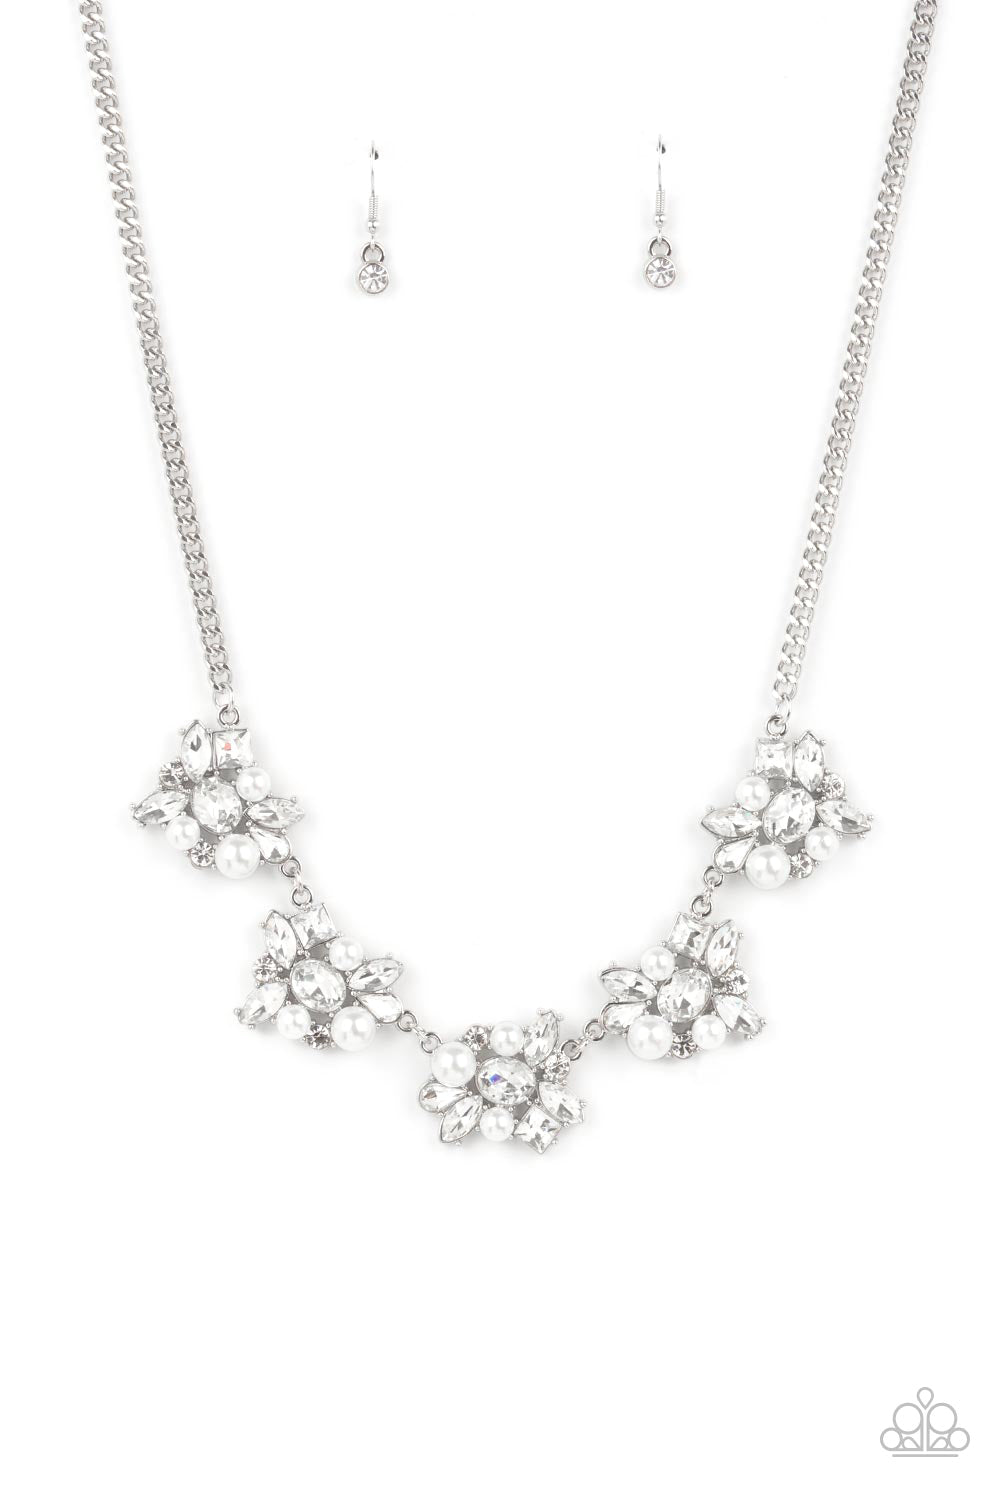 five-dollar-jewelry-heiress-of-them-all-white-necklace-paparazzi-accessories